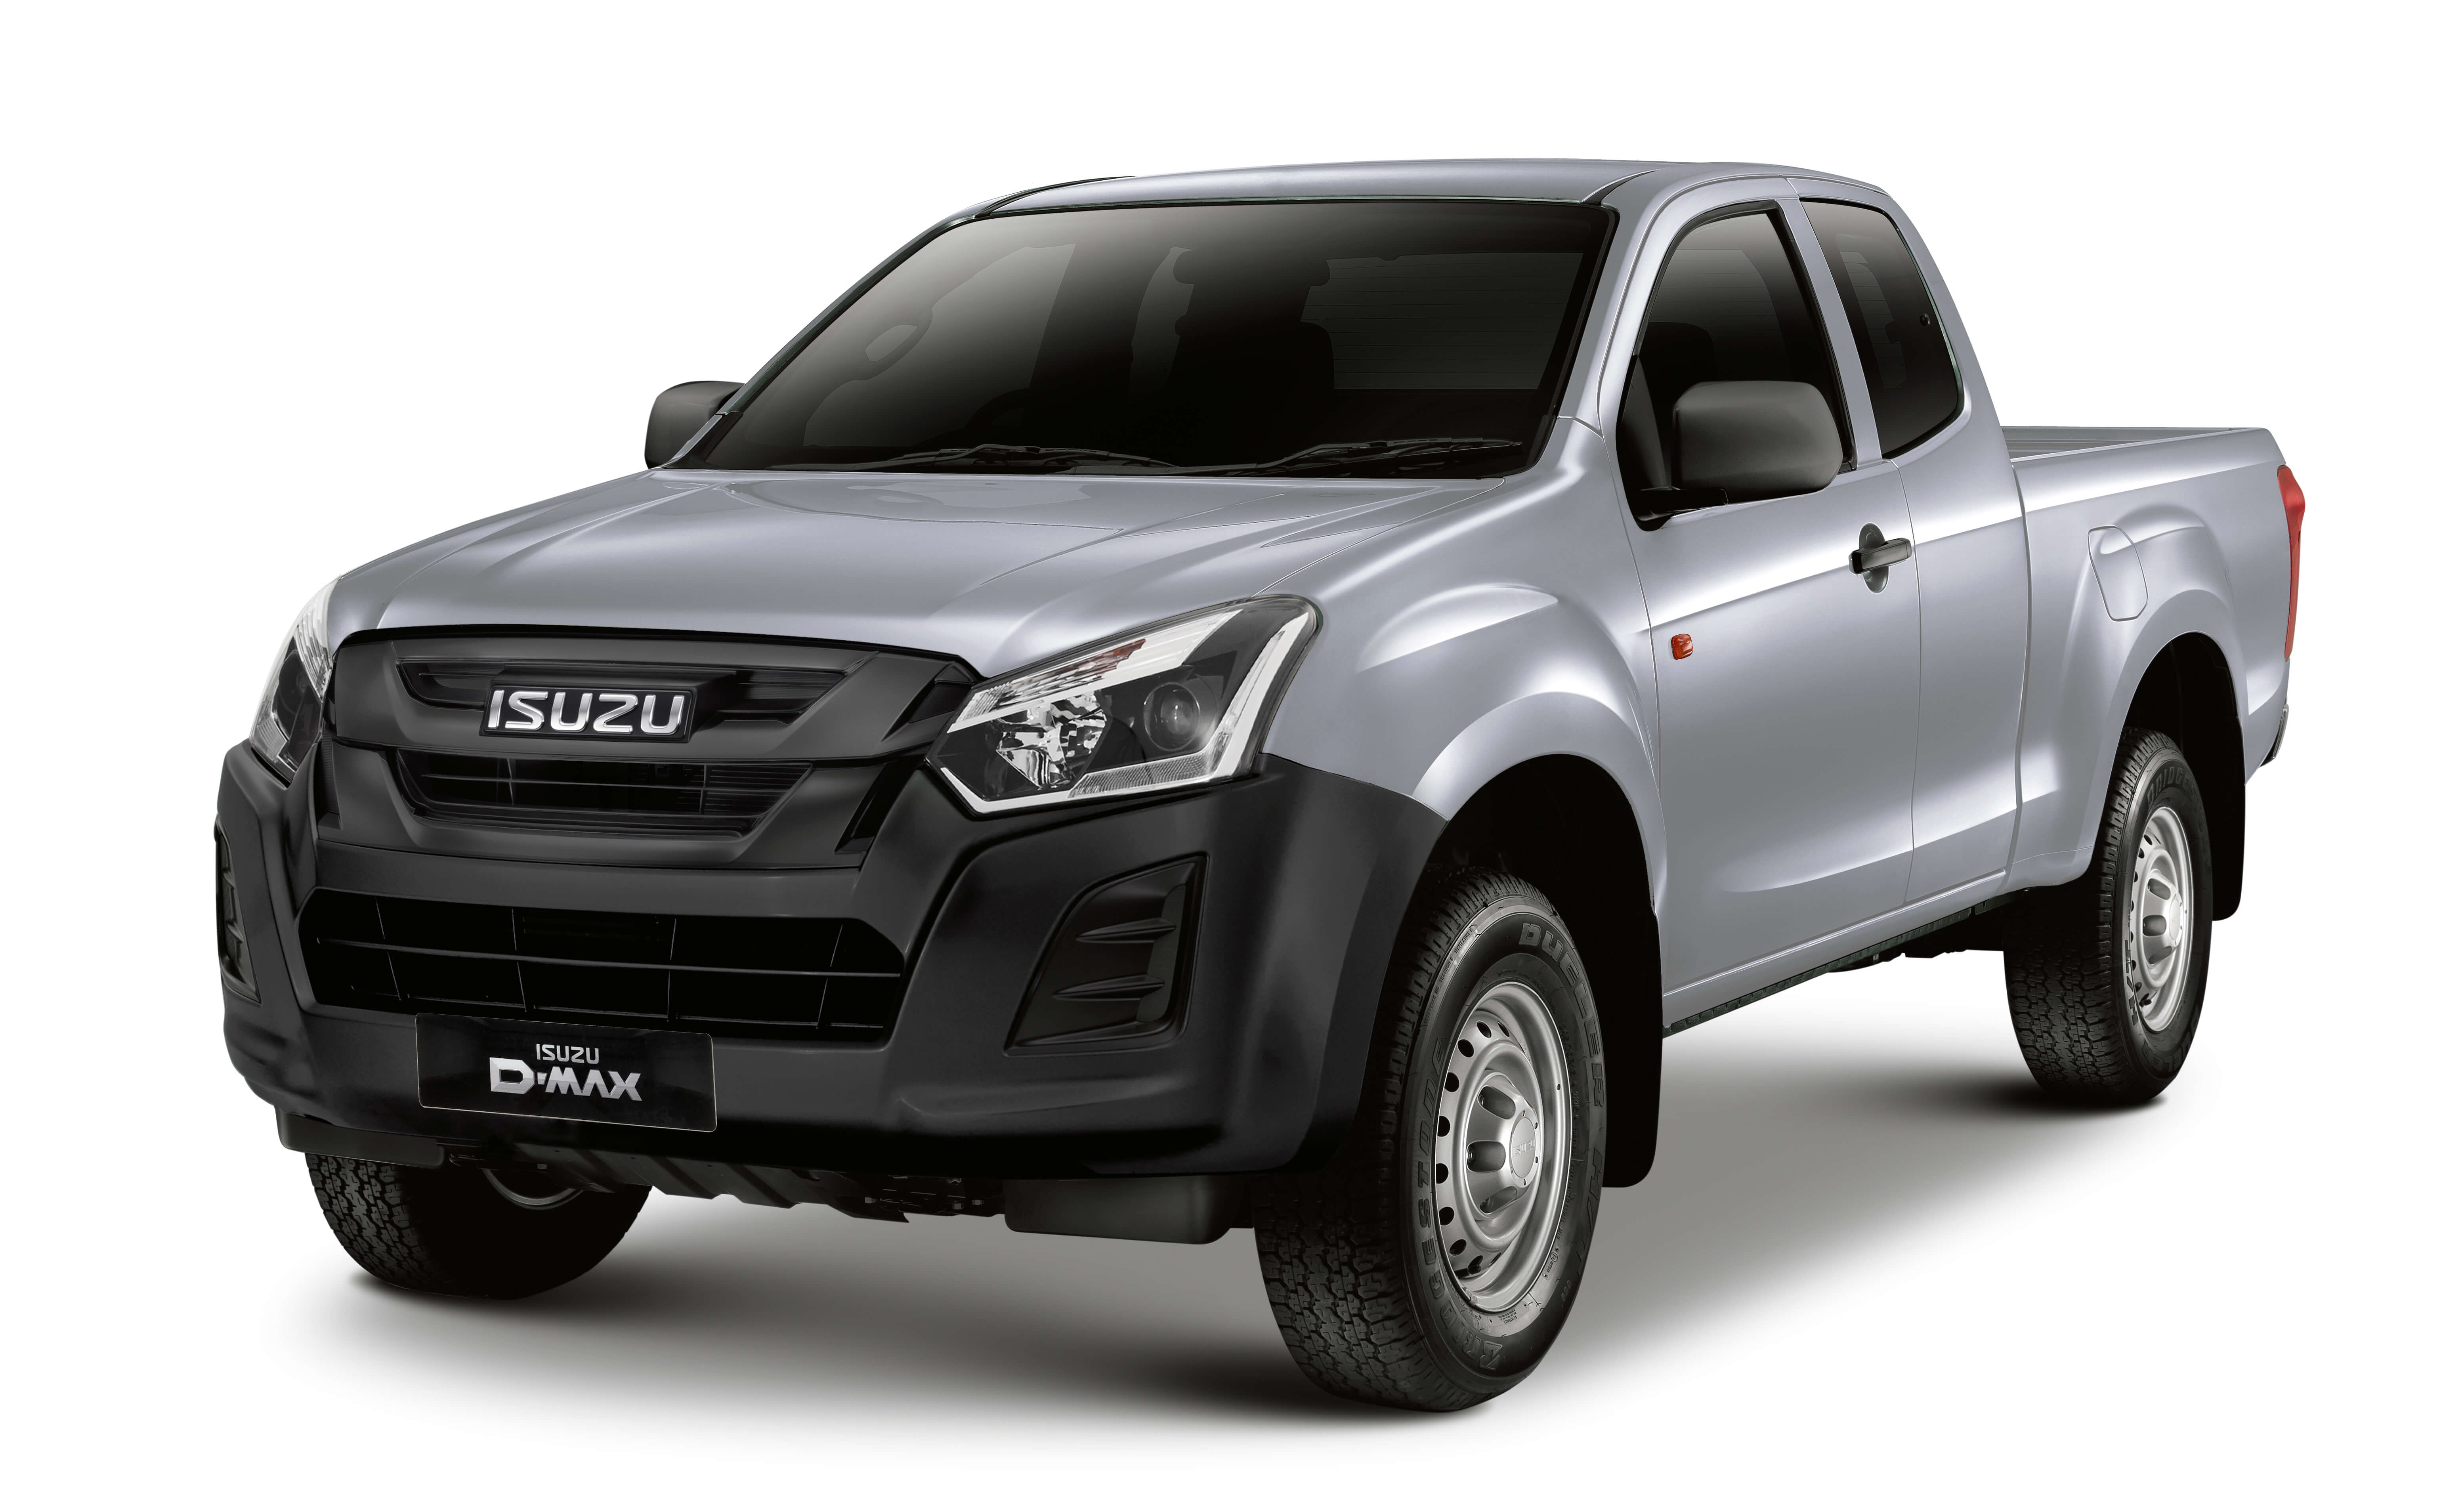 Isuzu D-Max Utility extended cab in silver front view